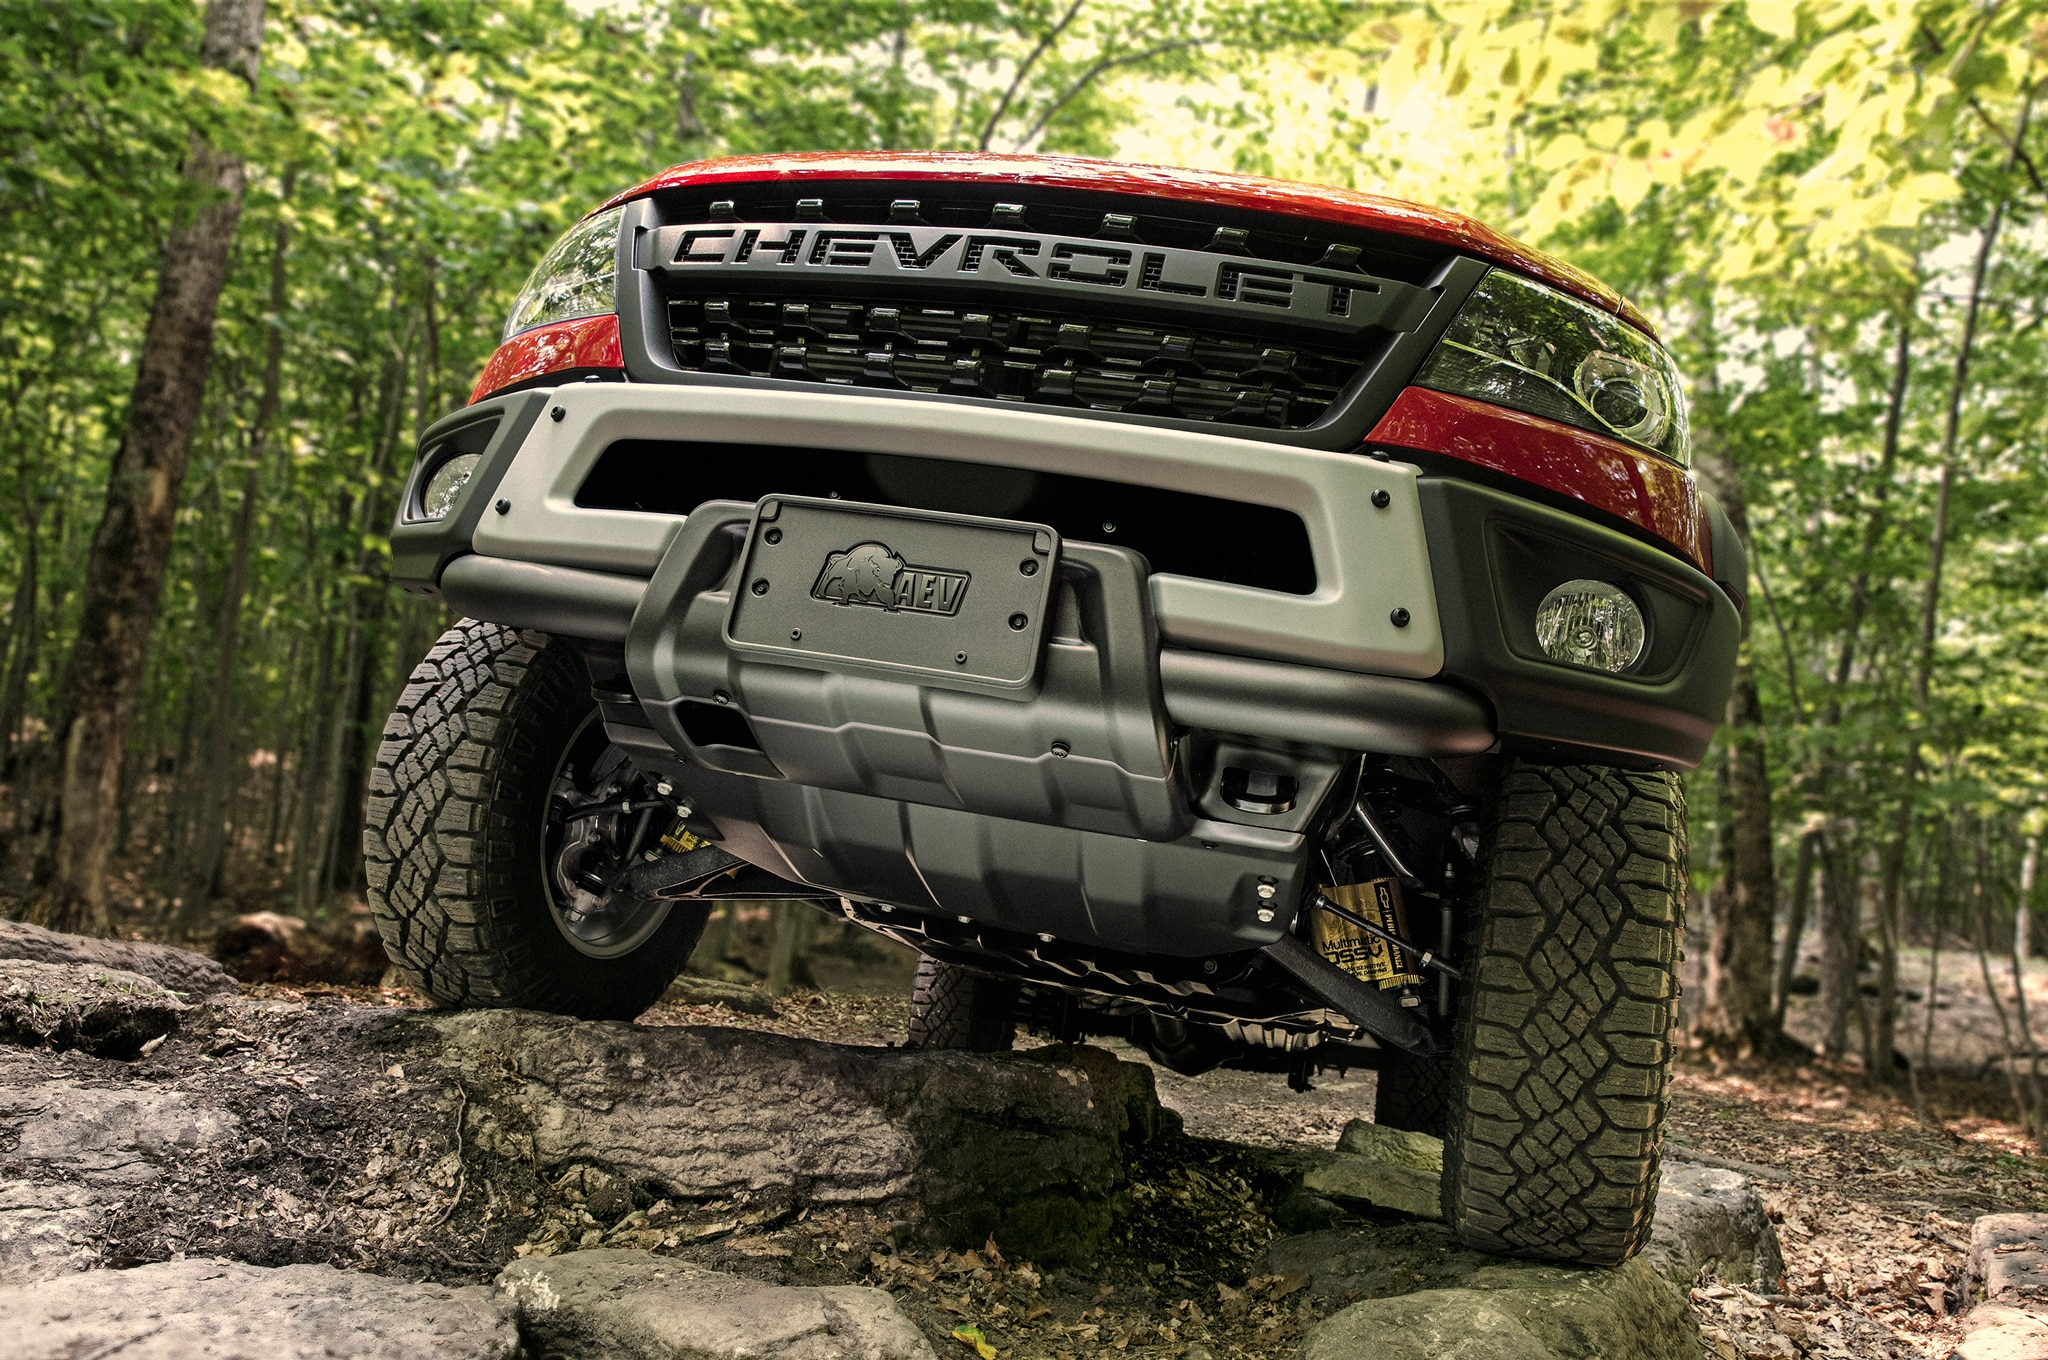 2019 chevrolet colorado zr2 bison front skidplate